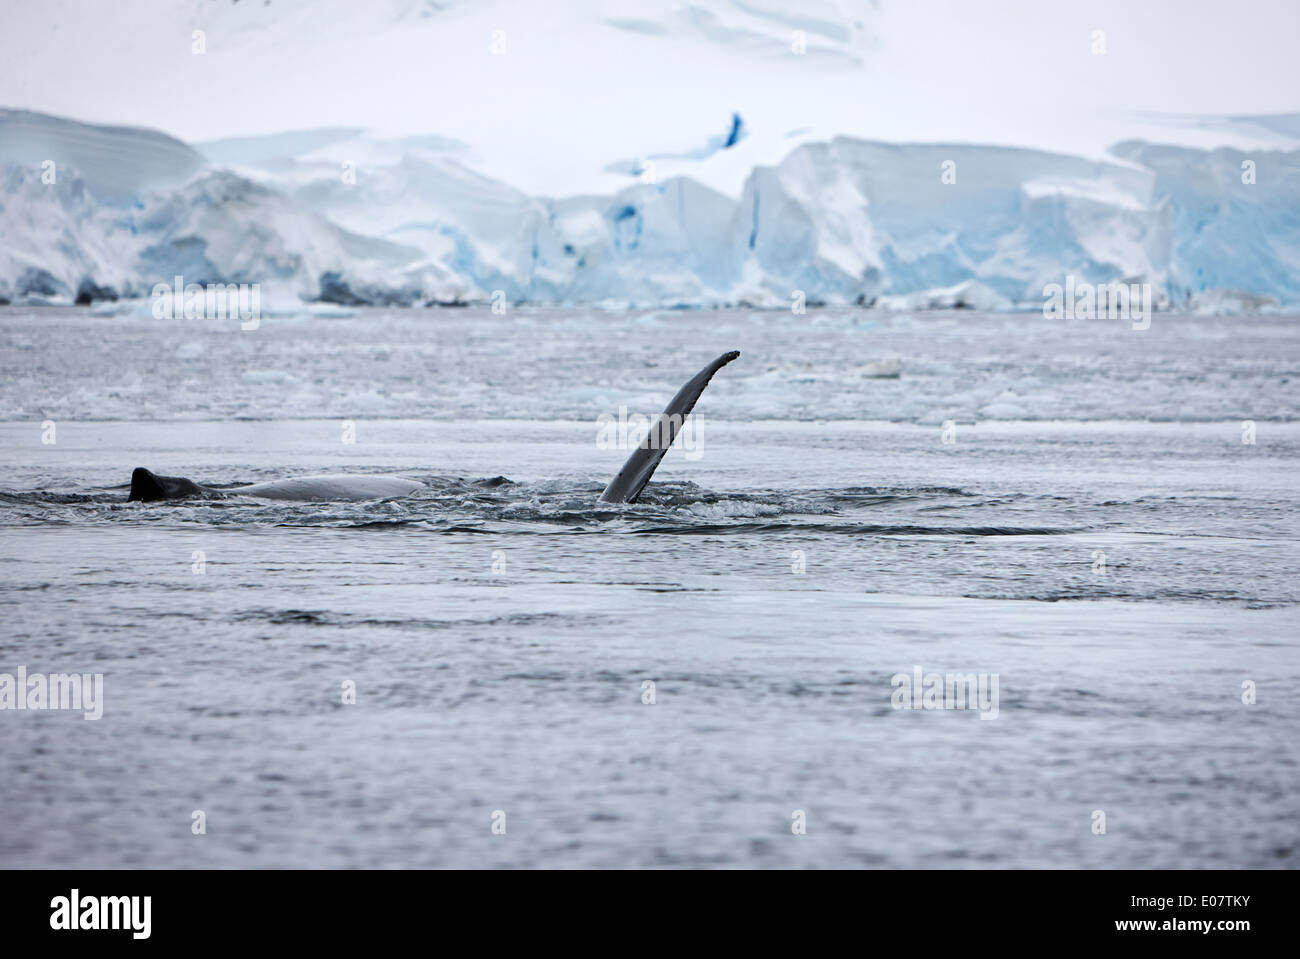 juvenile humpback whale pectoral fin slapping close to other whale on surface of wilhelmina bay Antarctica - Stock Image